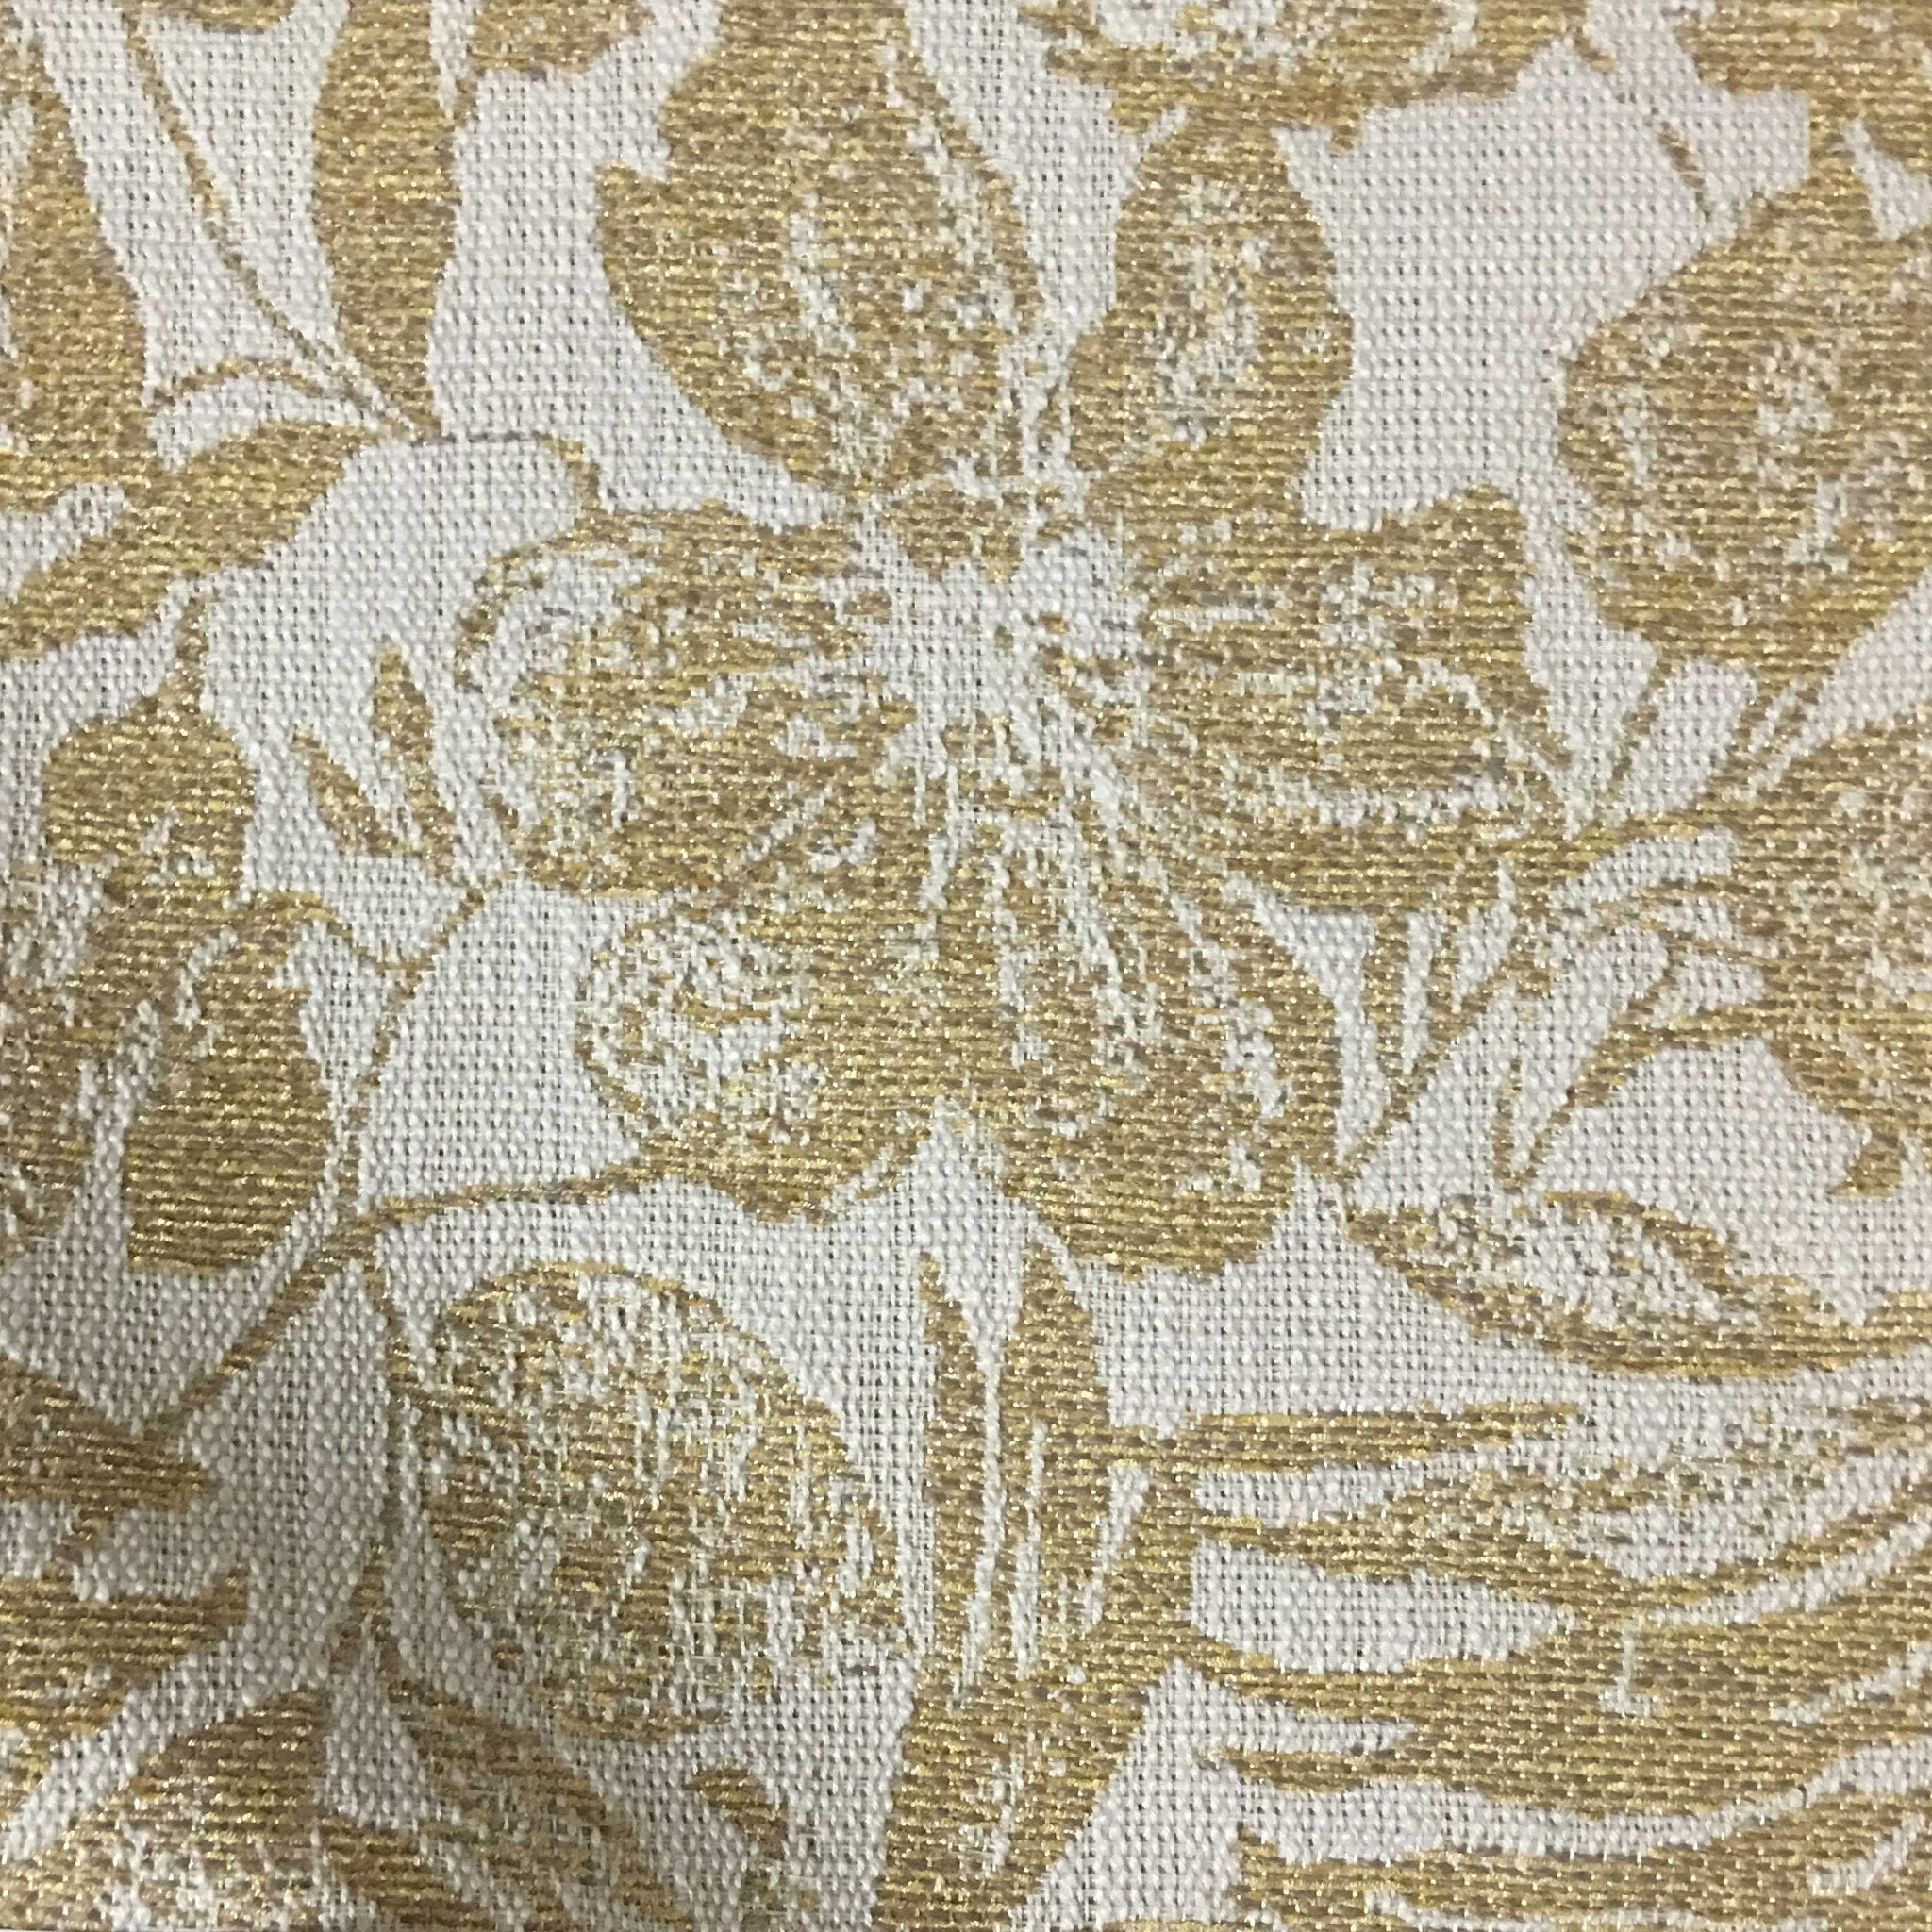 Oaks Tropical Pattern Woven Upholstery Fabric By The Yard 6 Colors